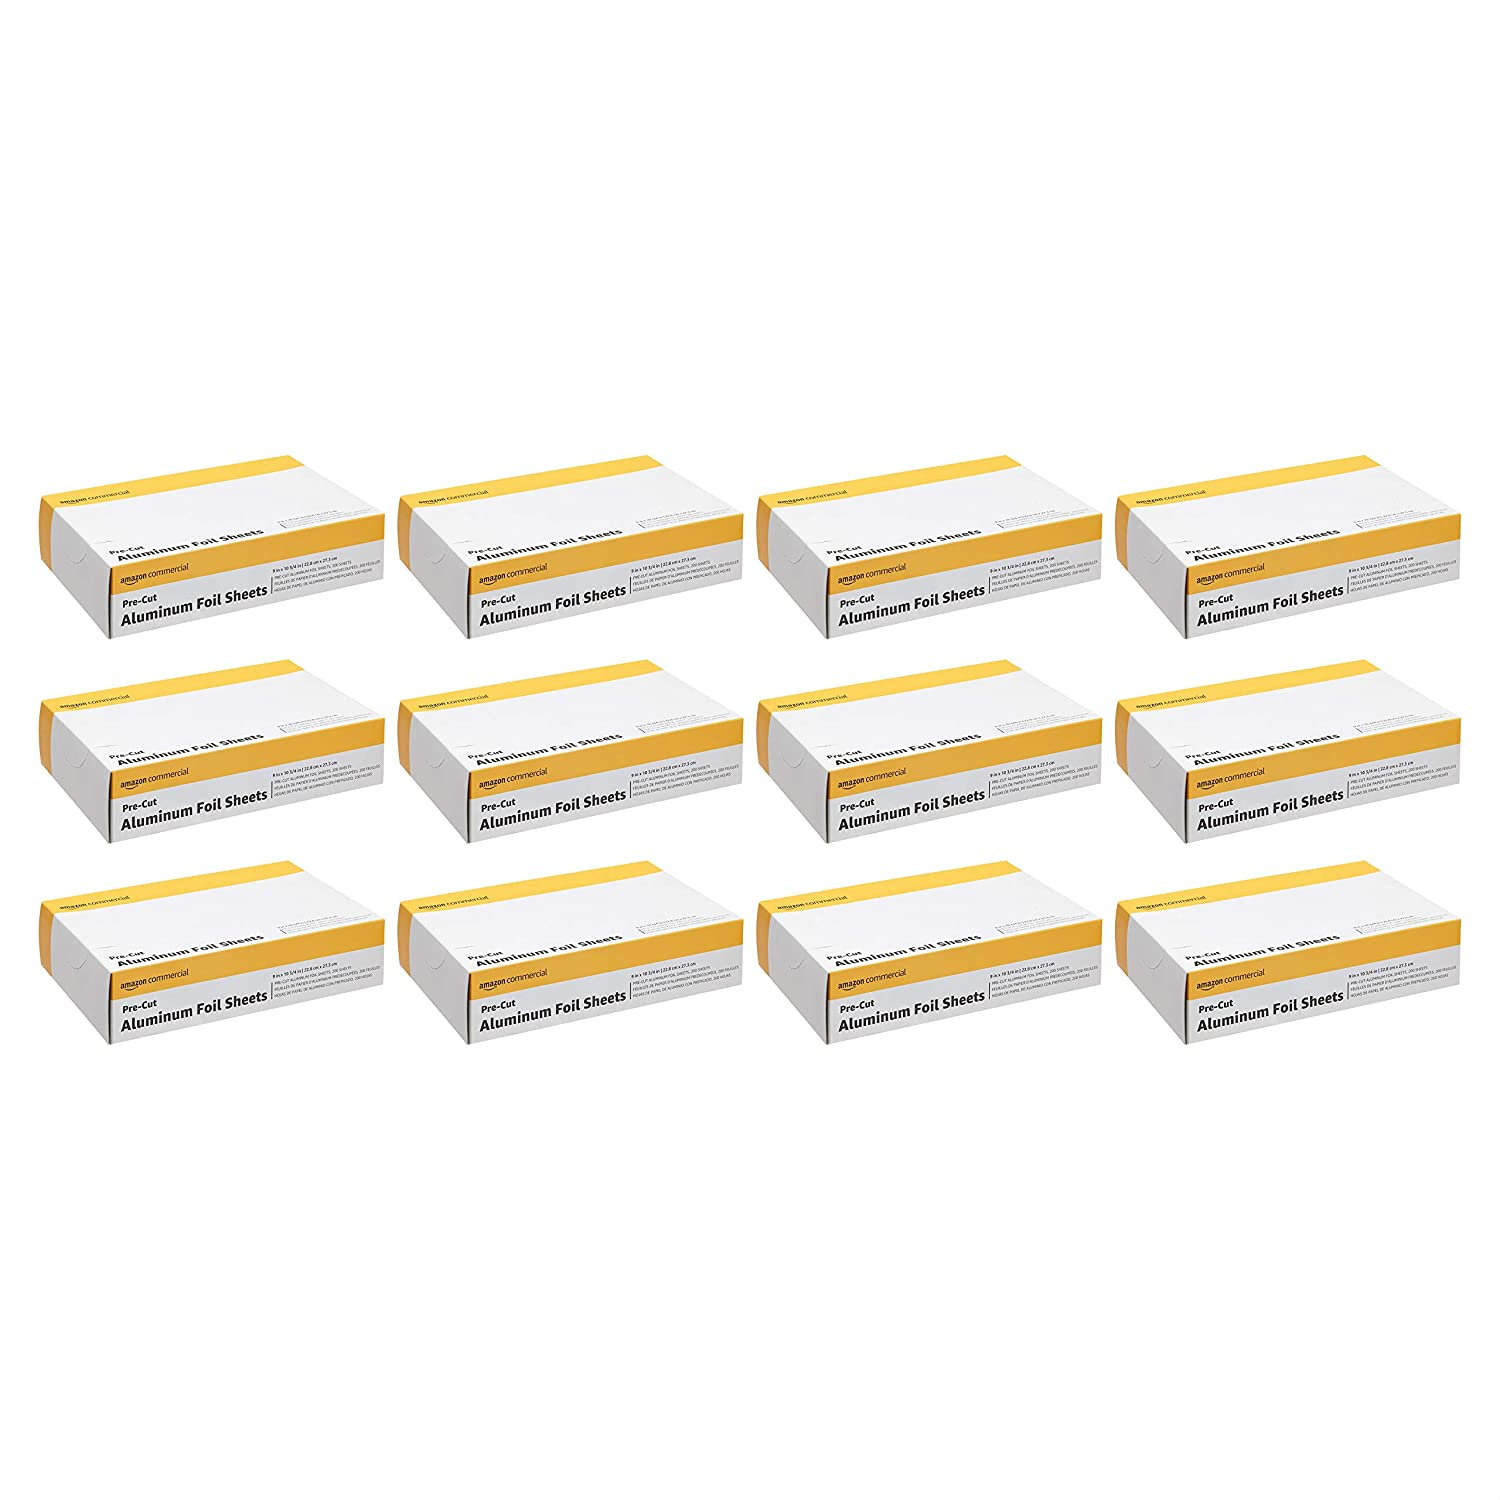 AmazonCommercial Pre-Cut Fresno Mall Aluminum Foil Sheets NEW before selling ☆ 12 X 10-3 4